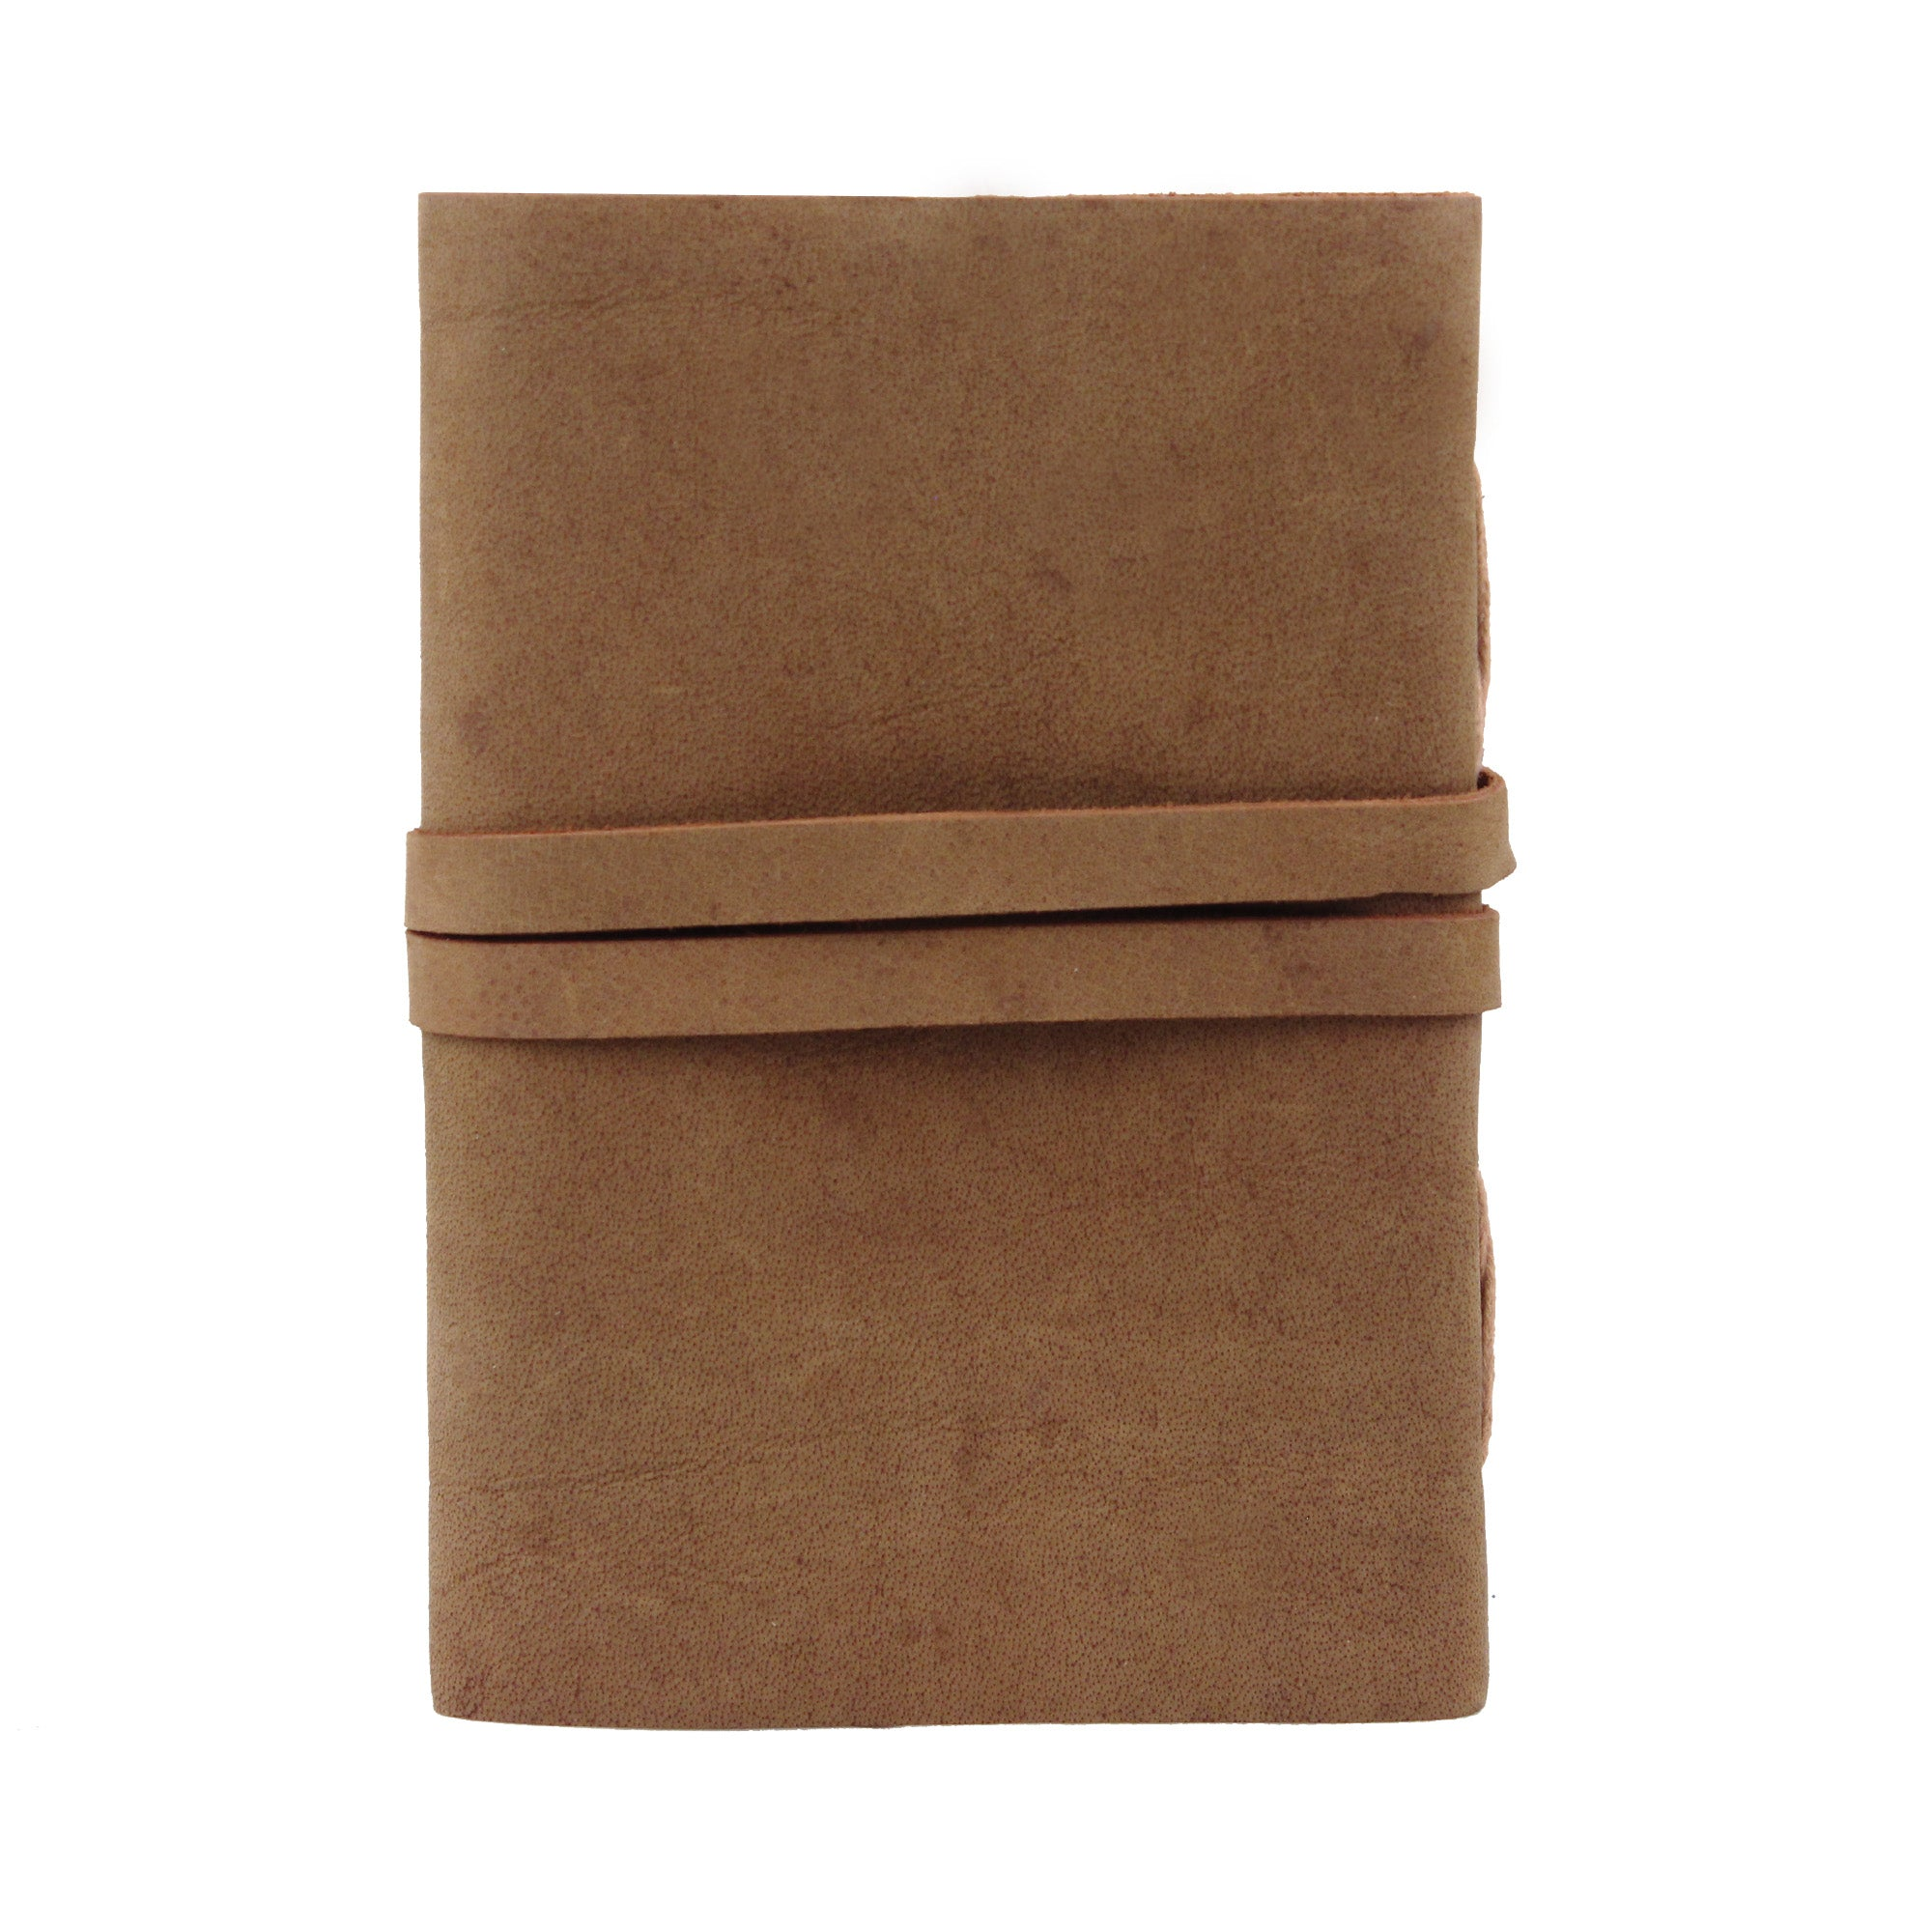 Dark Brown Buffalo Leather Journal Writing Pad